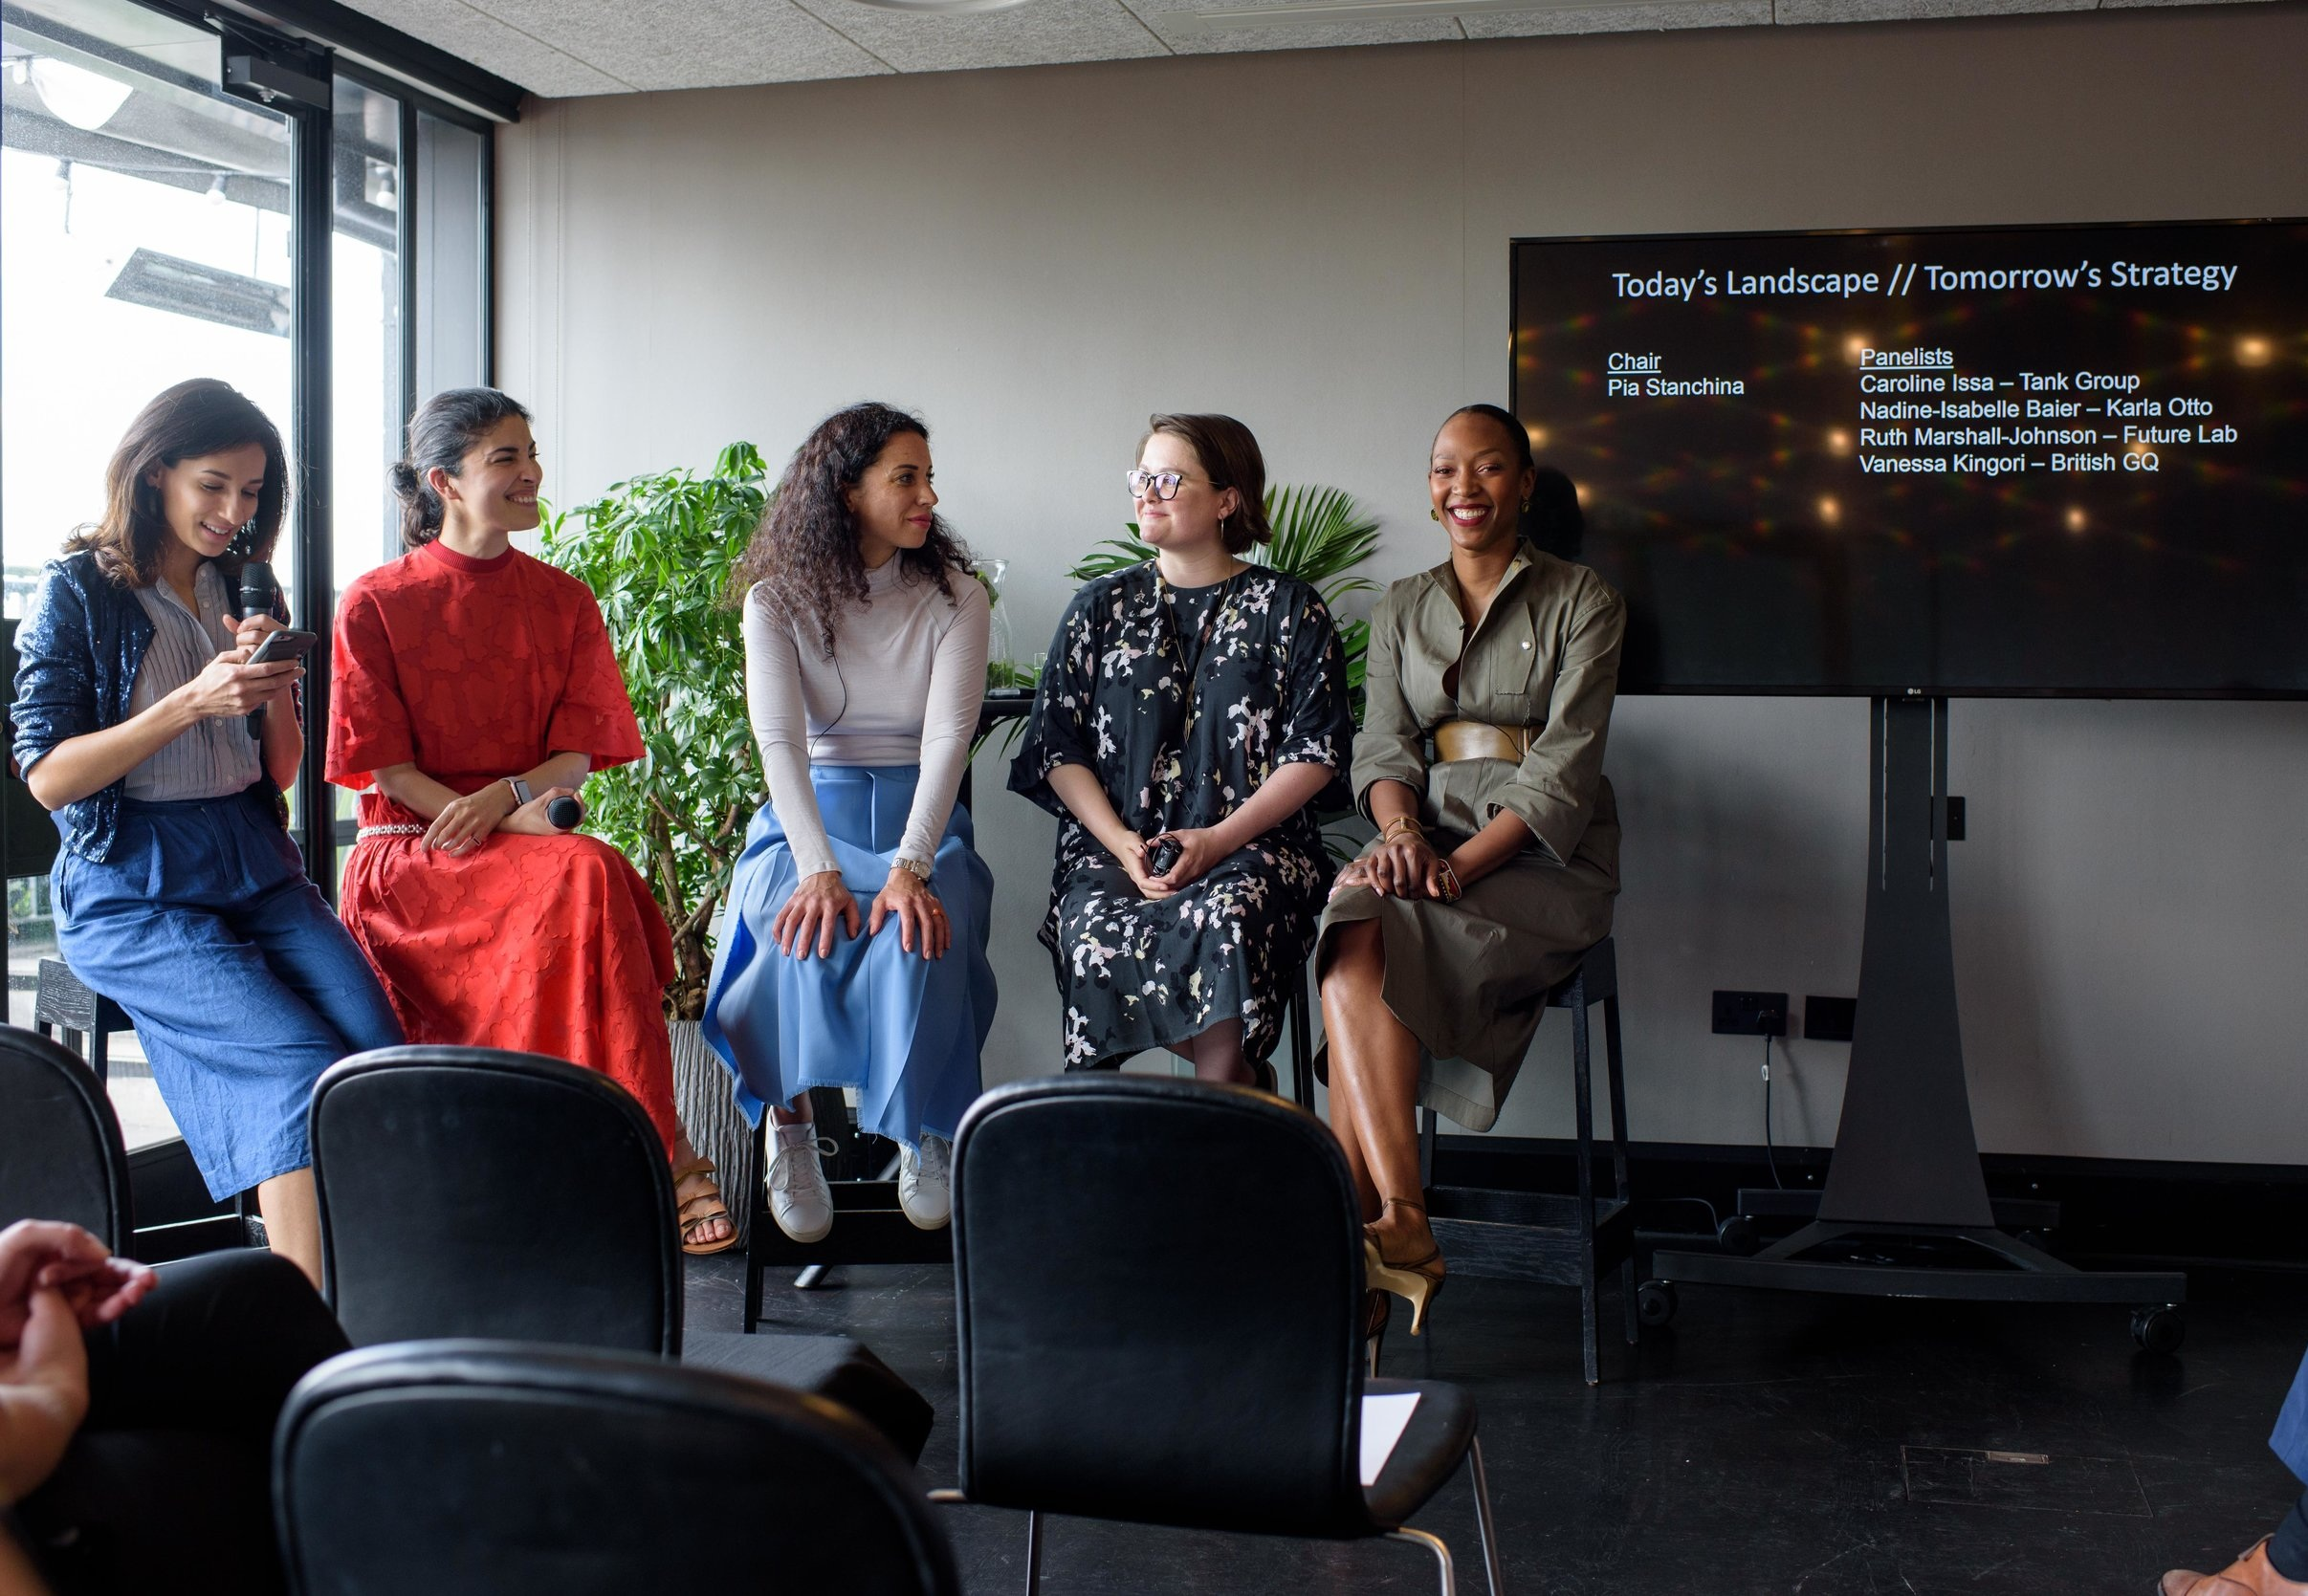 Moderating a Panel on Today's Landscape / Tomorrow's Strategy for The British Fashion Council's Annual Partner Forum with panelists Caroline Issa, Nadine Baier from Karla Otto, Ruth Marshall-Johnson from the Future Laboratory and Vanessa Kingori, British GQ